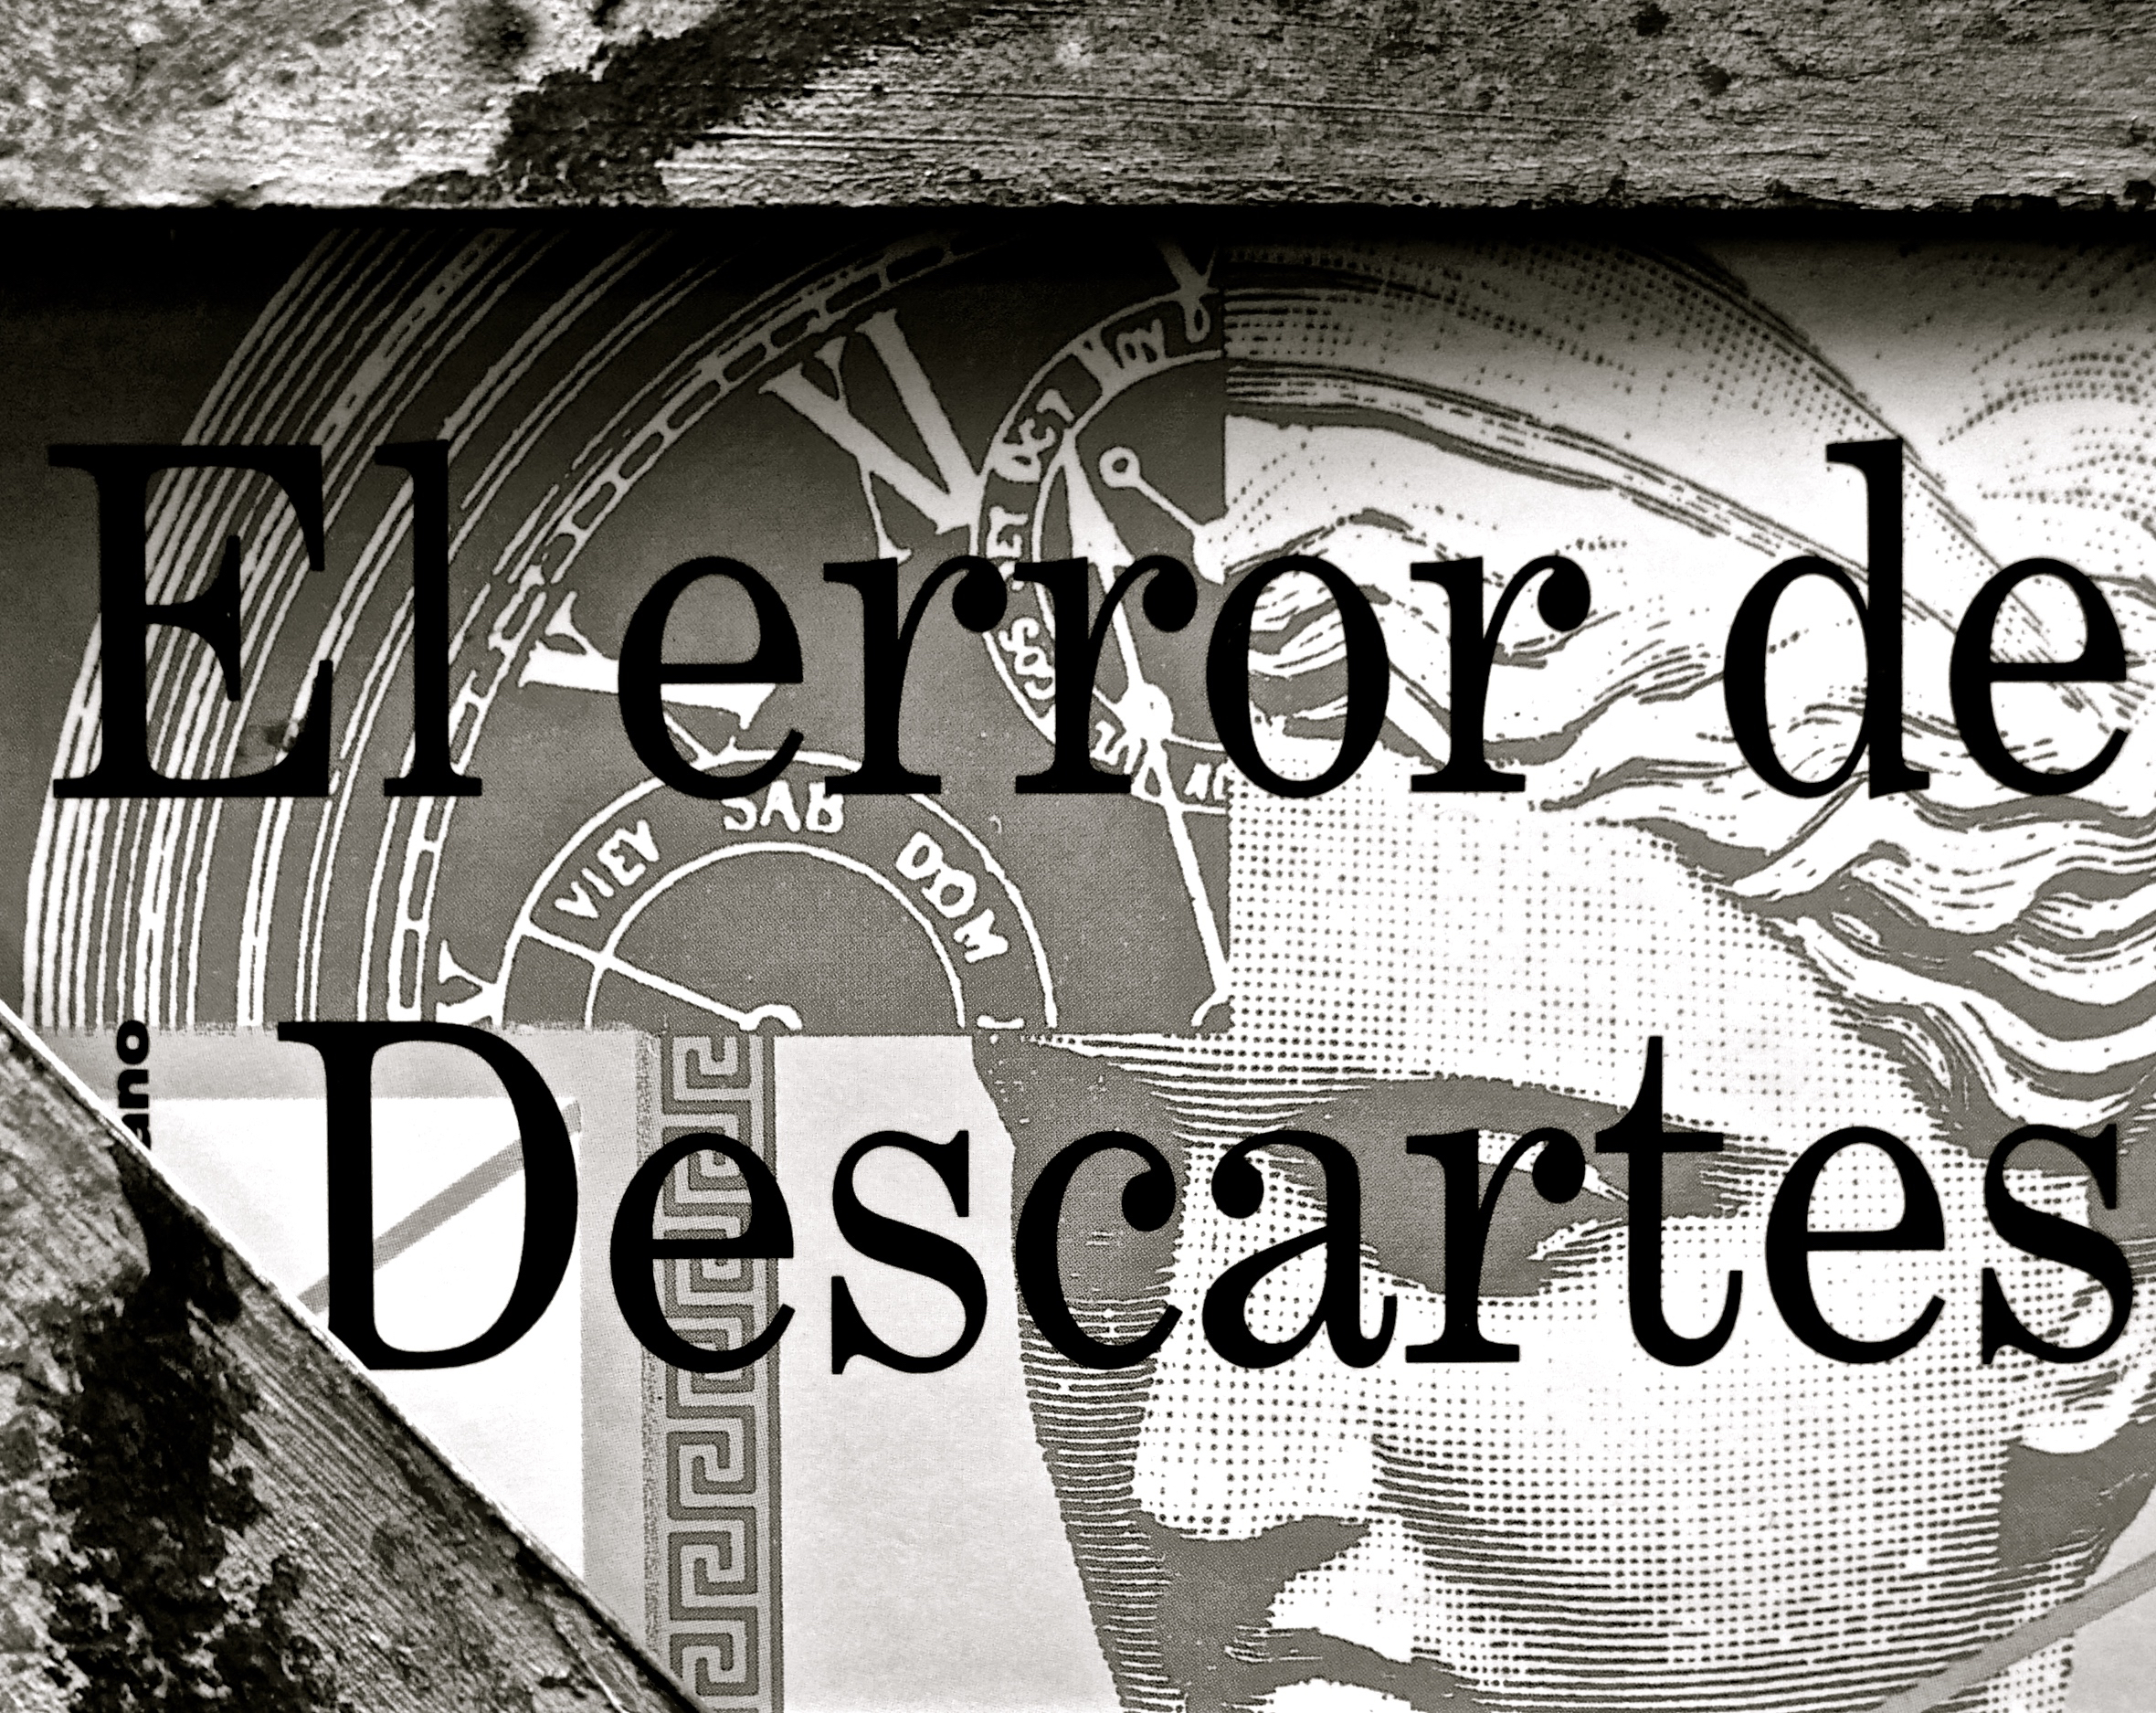 Relecturas oportunas: El error de Descartes Damasio